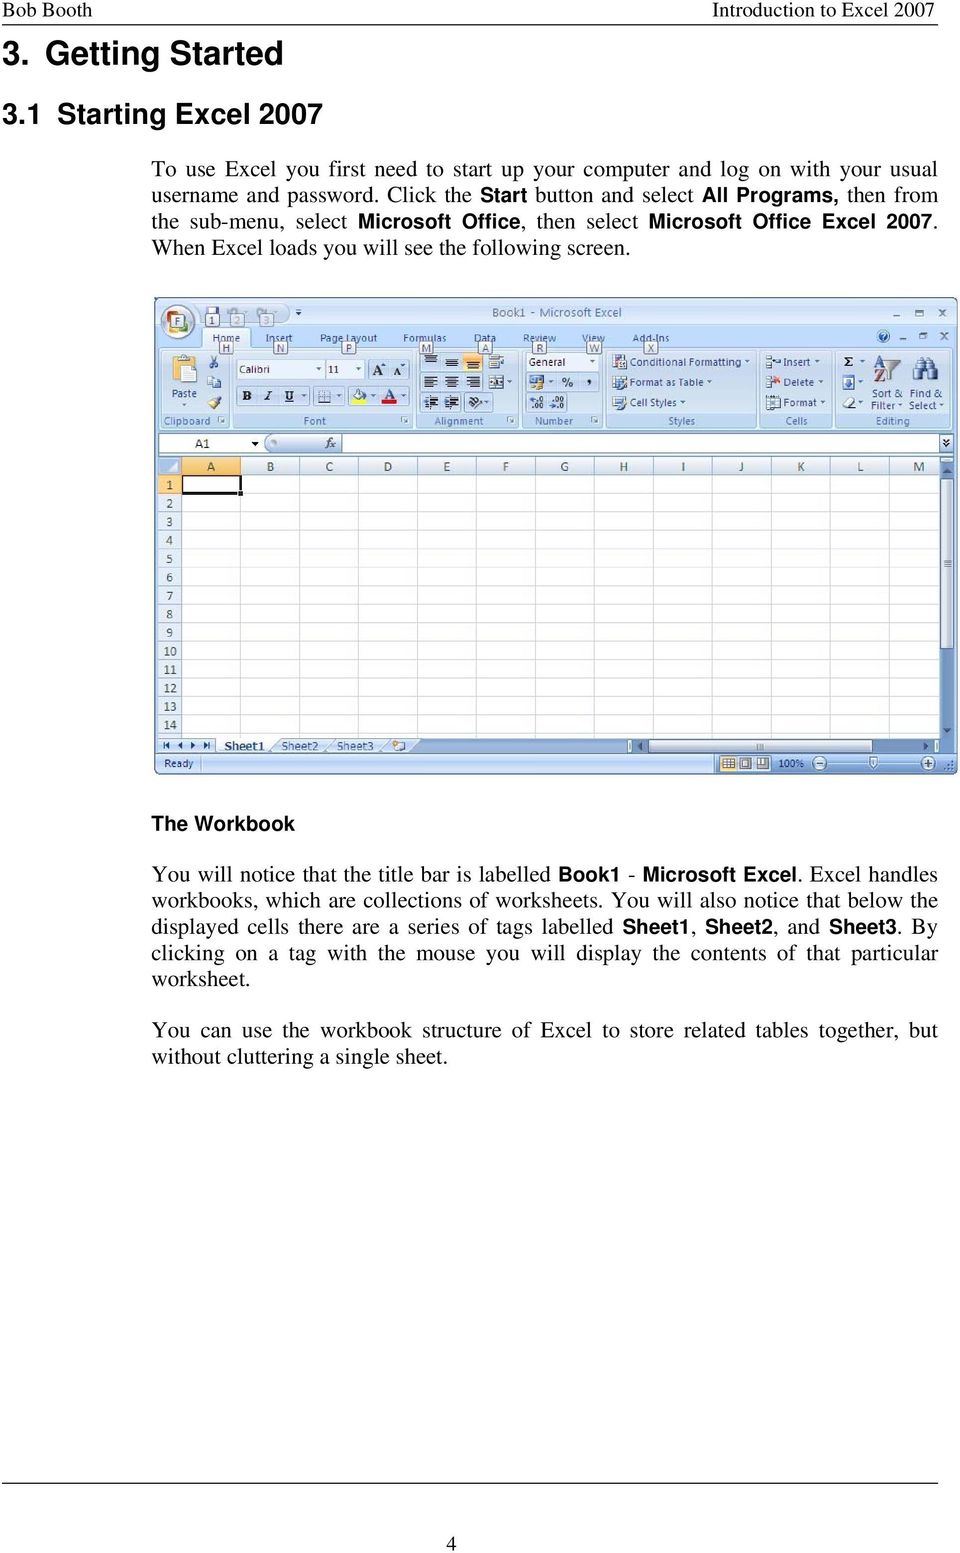 The Workbook You will notice that the title bar is labelled Book1 - Microsoft Excel. Excel handles workbooks, which are collections of worksheets.